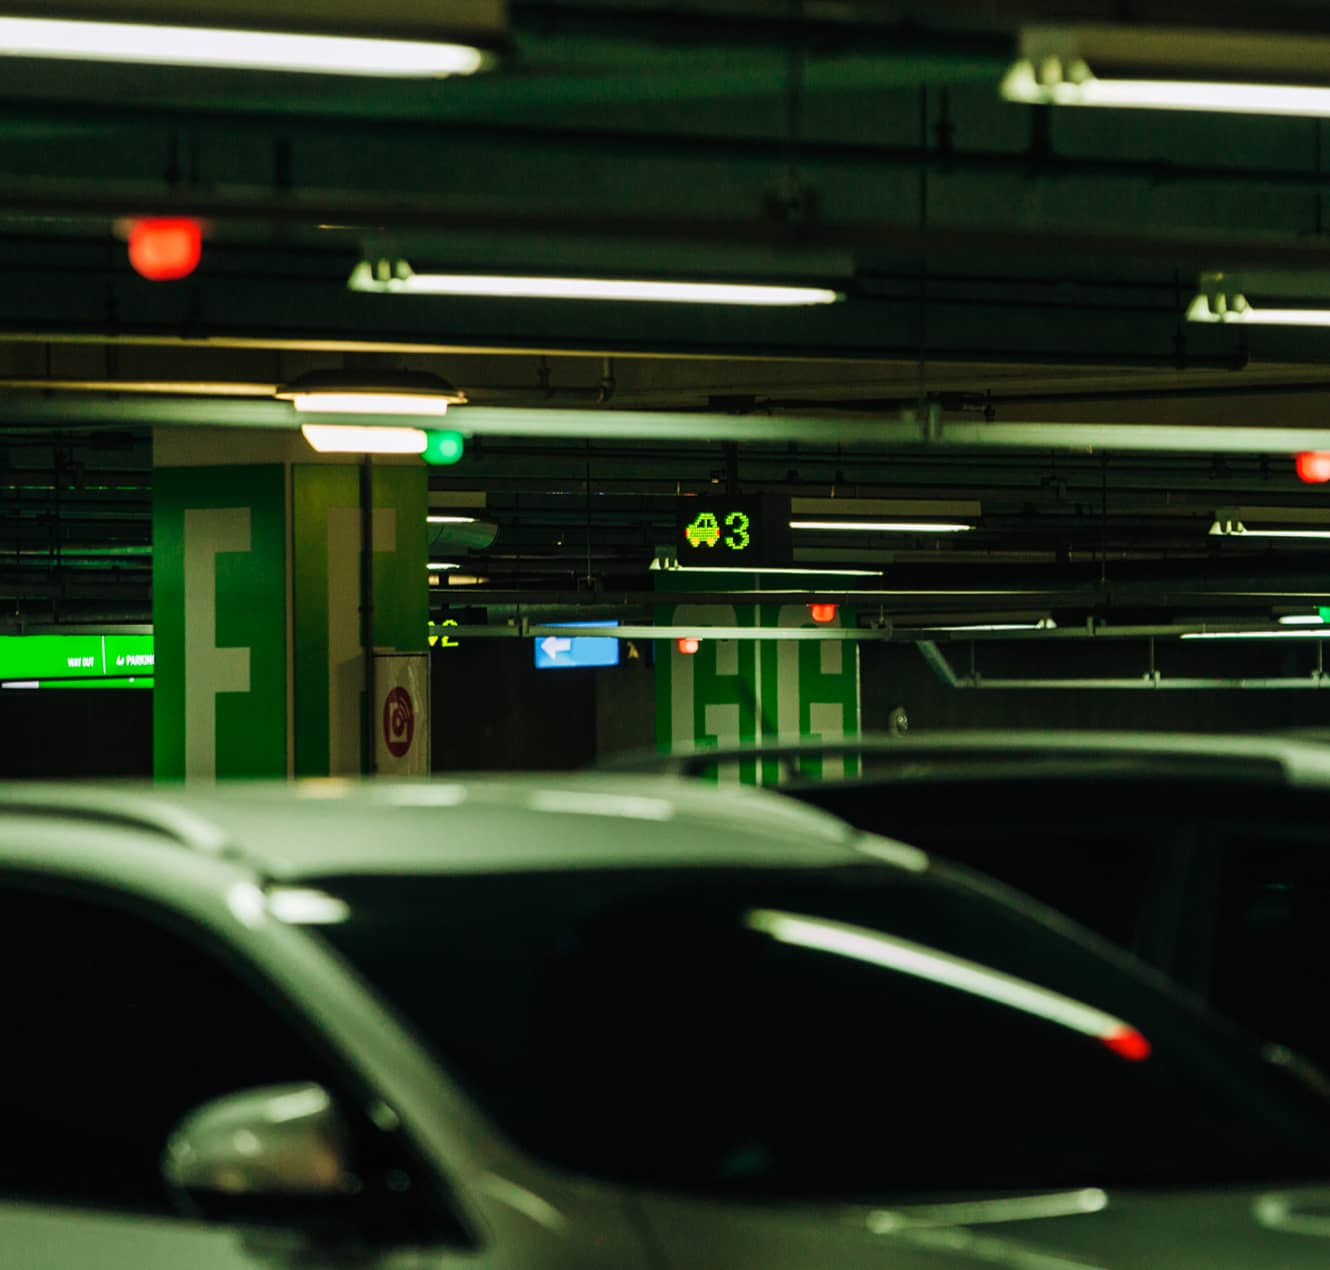 Photo of a parking lot showing the tops of several cars lined up there, with sensors and signboards visible above them.